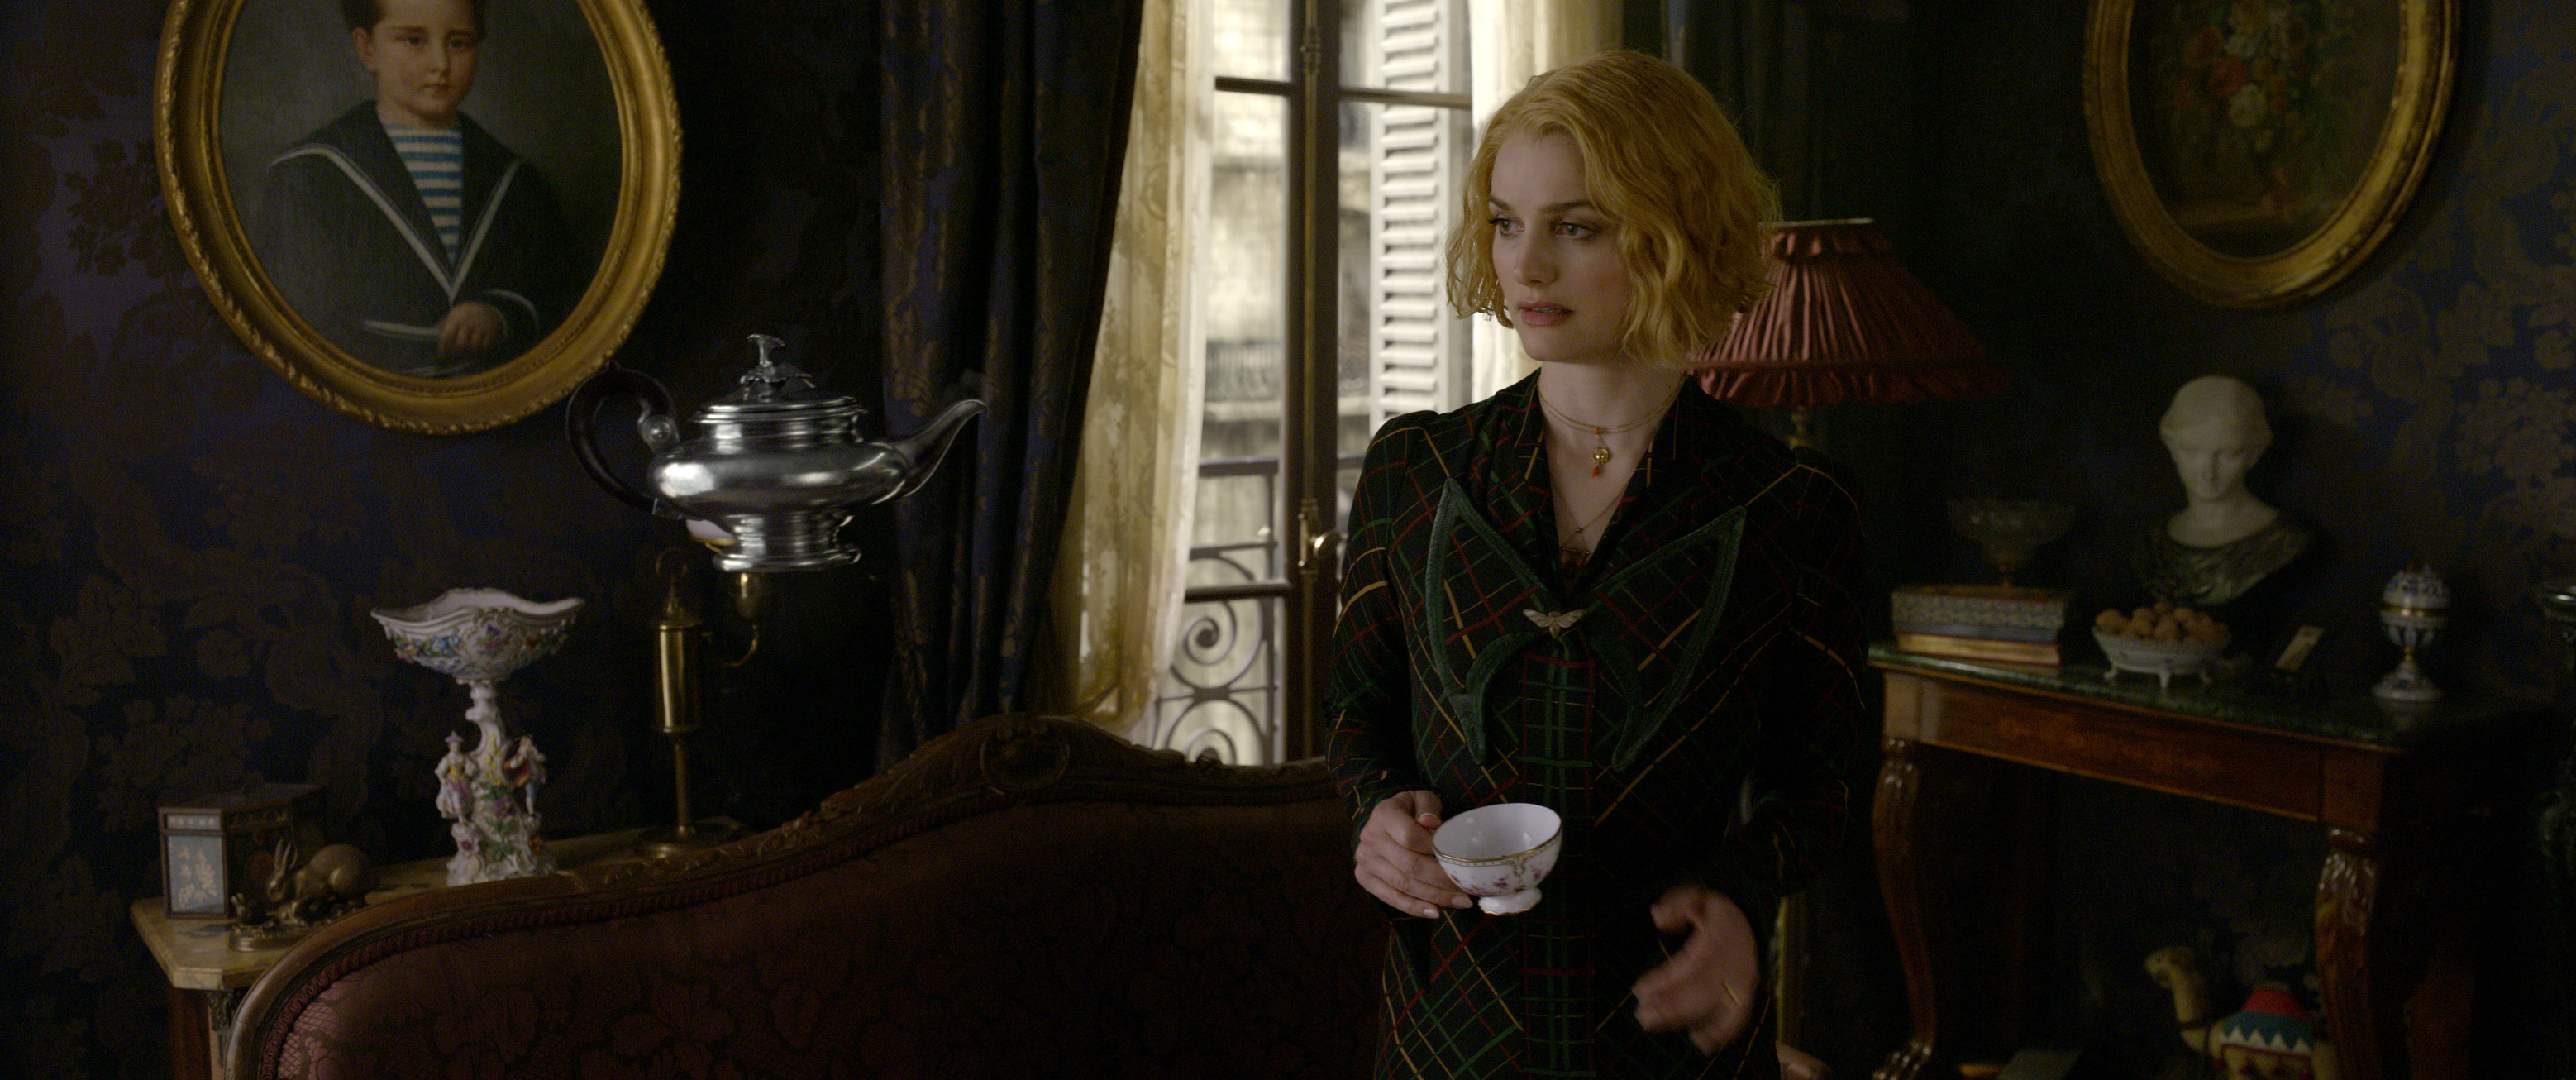 WB COG Queenie Goldstein and Floating Teapot